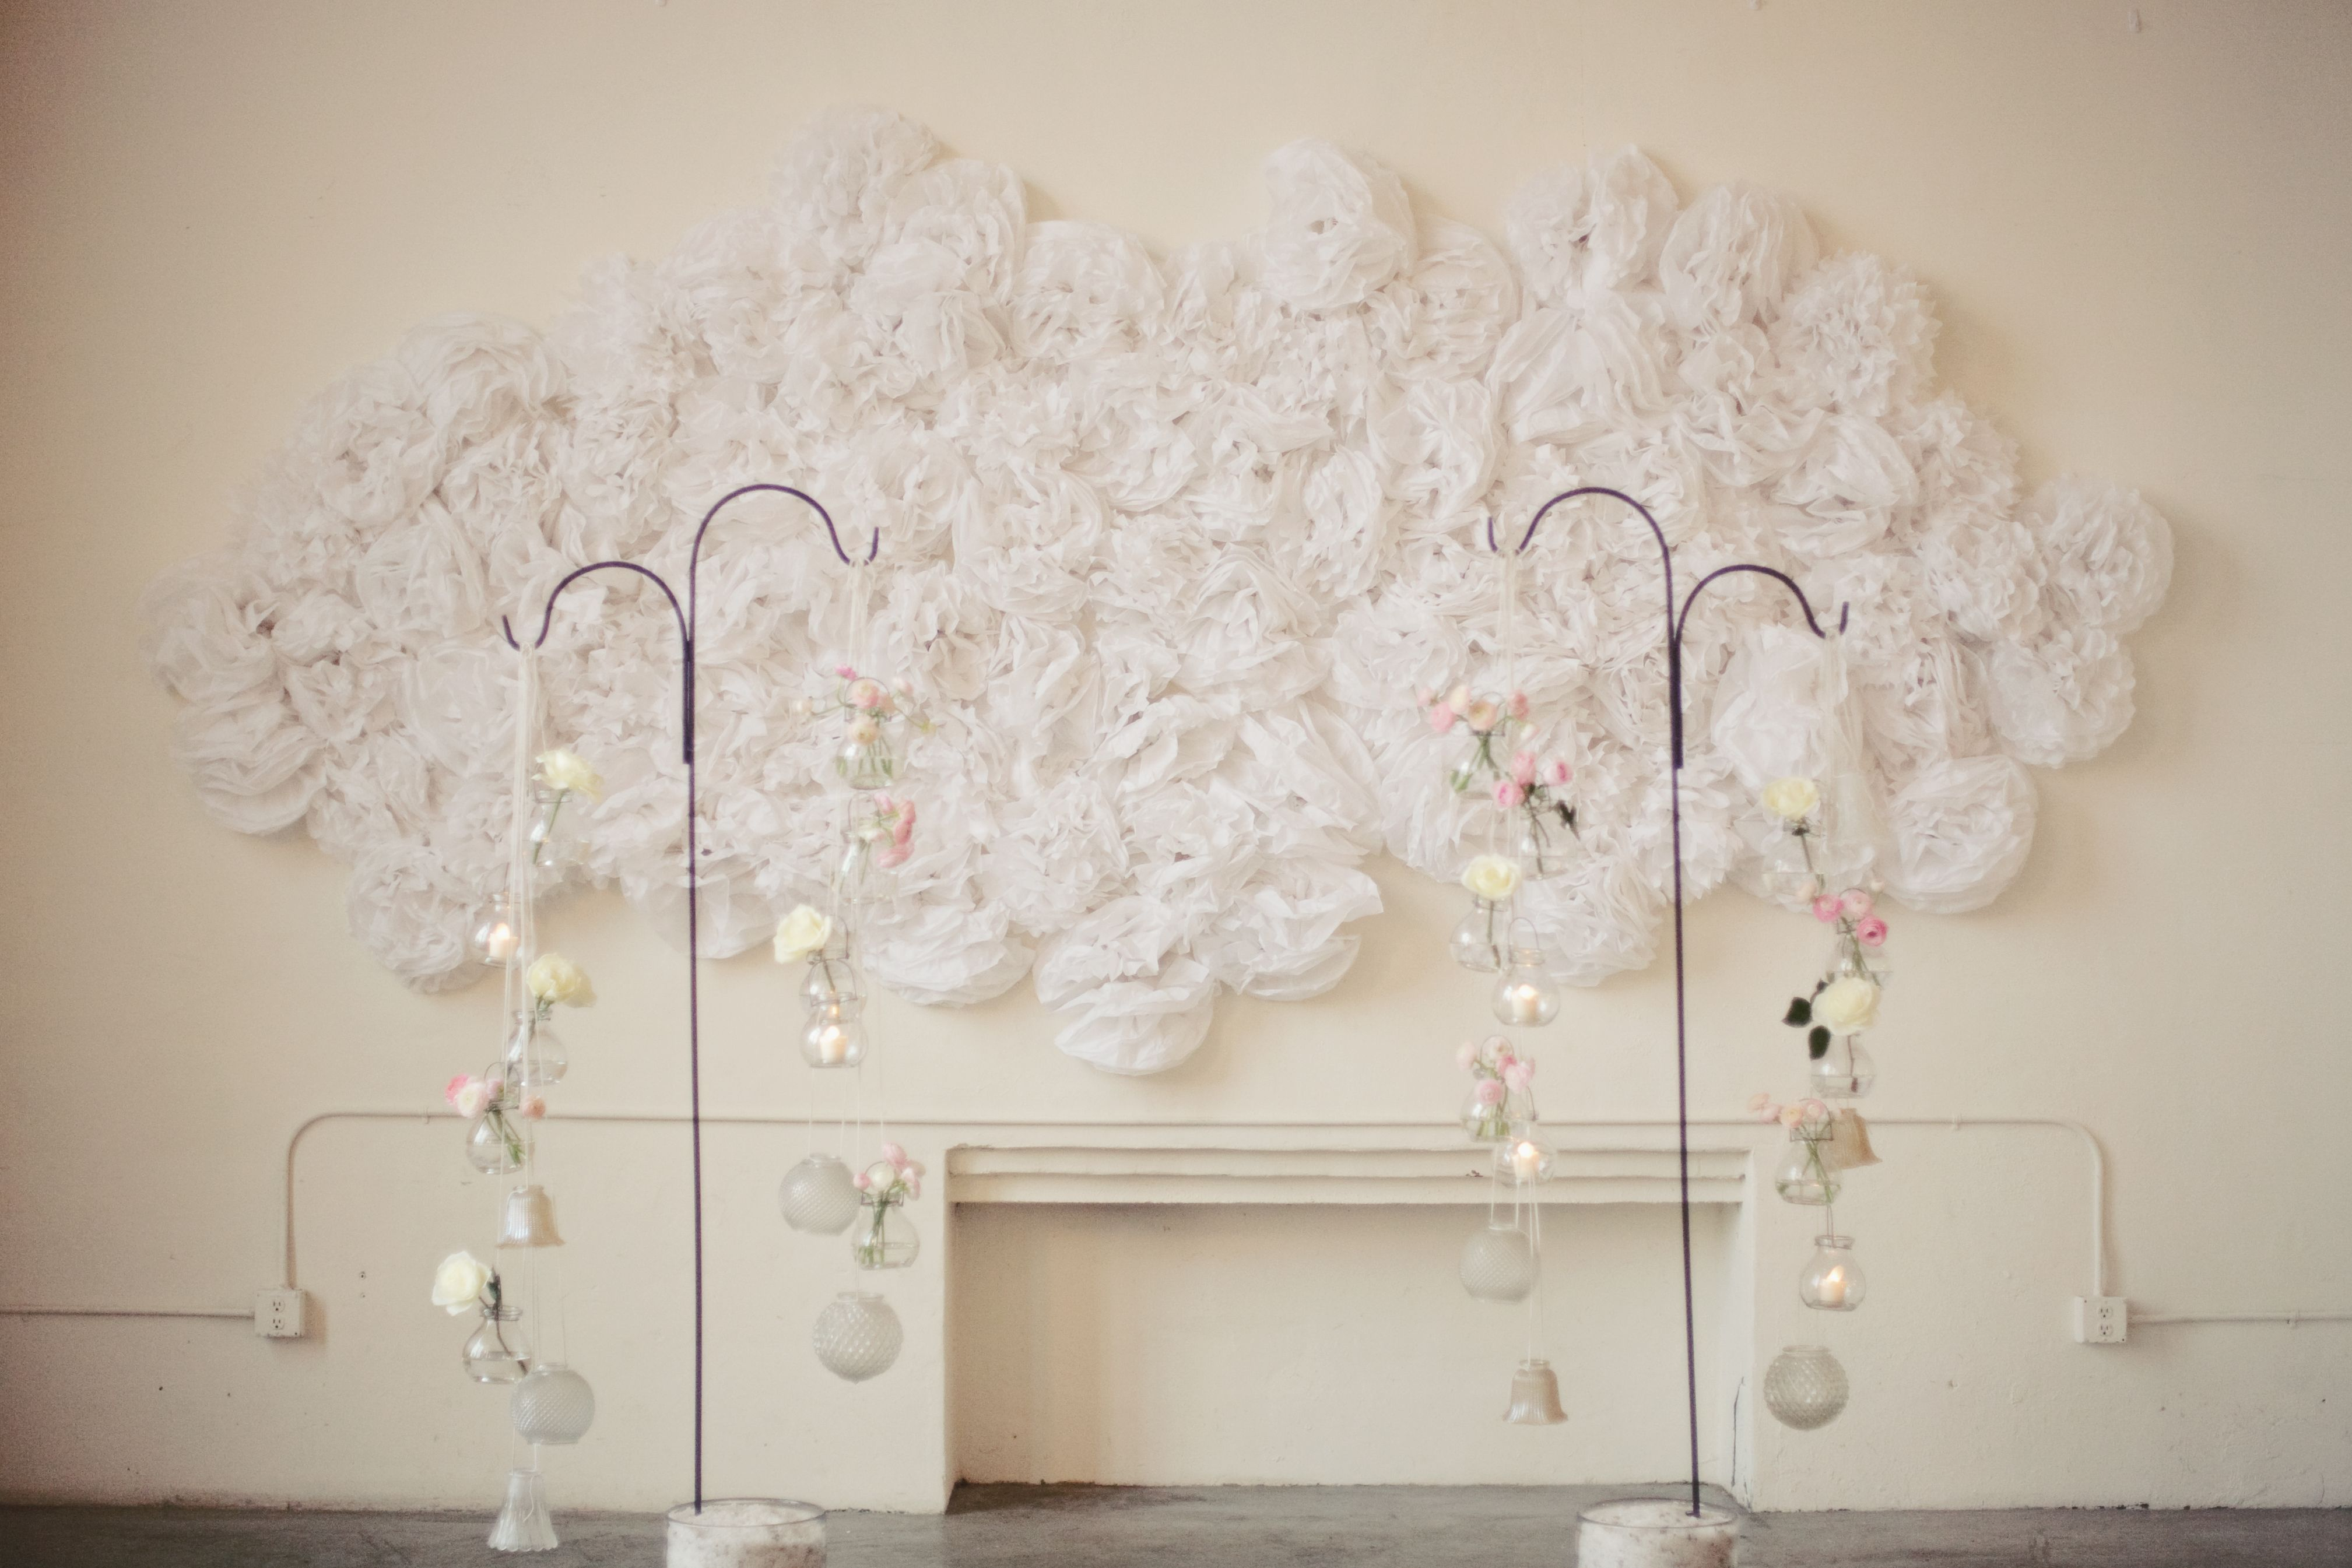 Wedding Wall Decor we especially love the wedding ceremony wall decor made of white